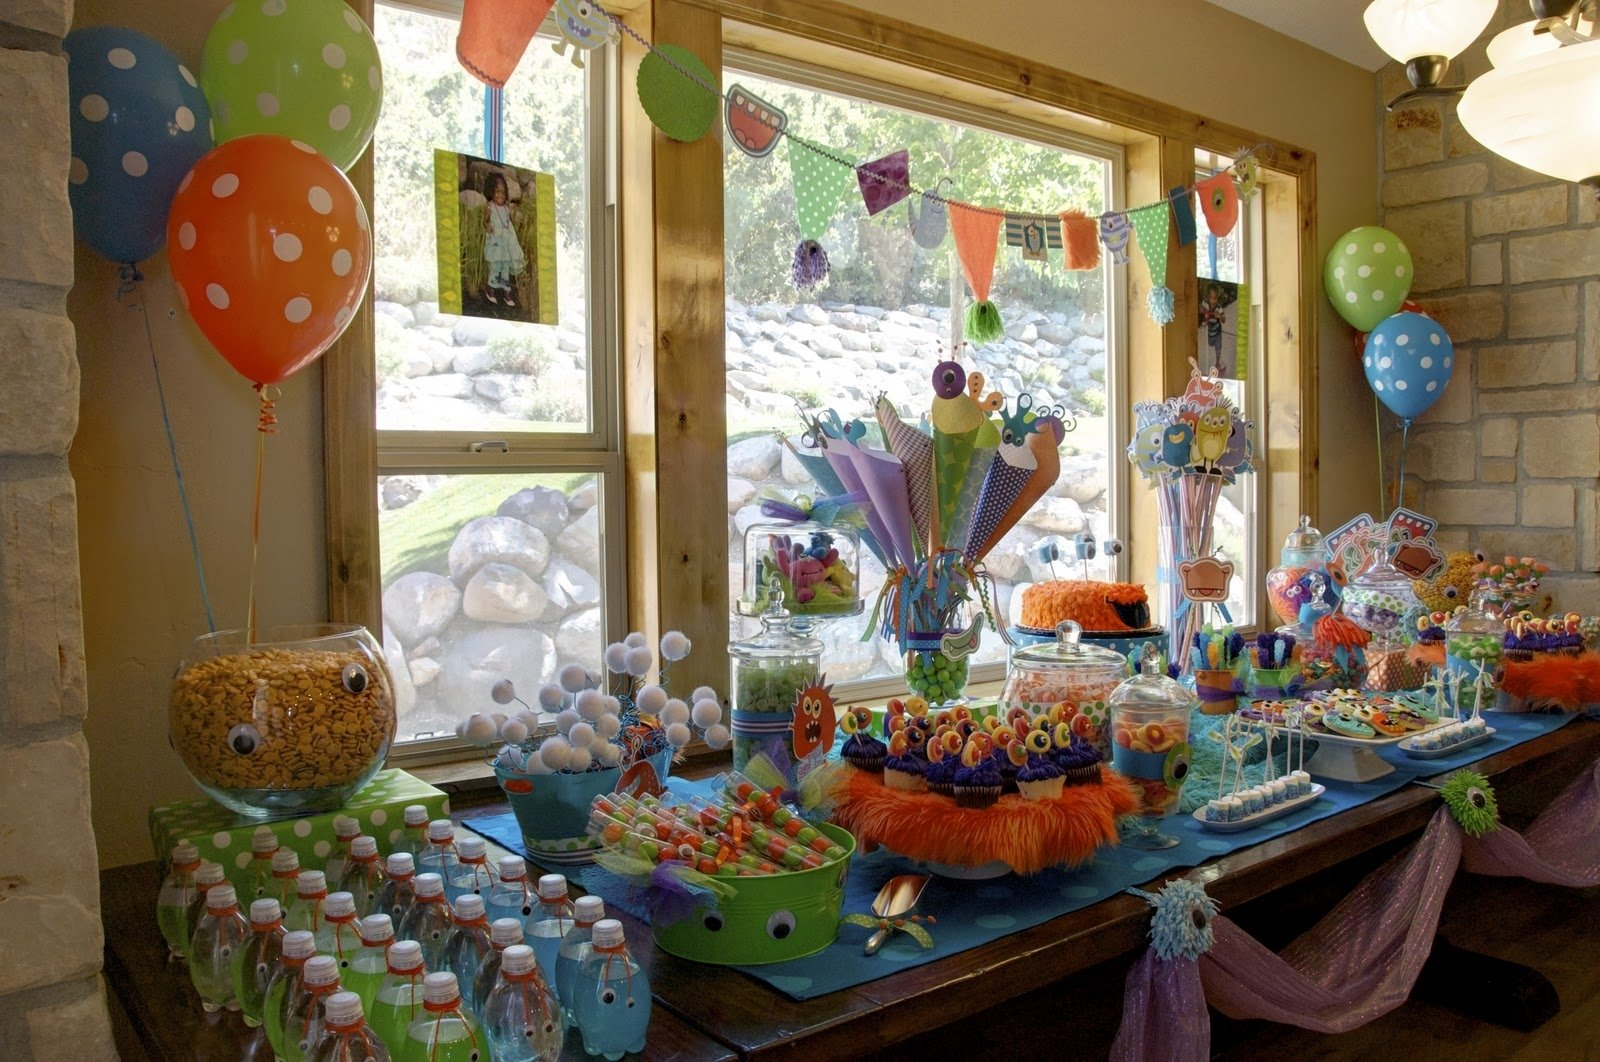 10 Great 14 Year Old Birthday Party Ideas my friends birthday is in the winter and she wanteaes cause shes 12